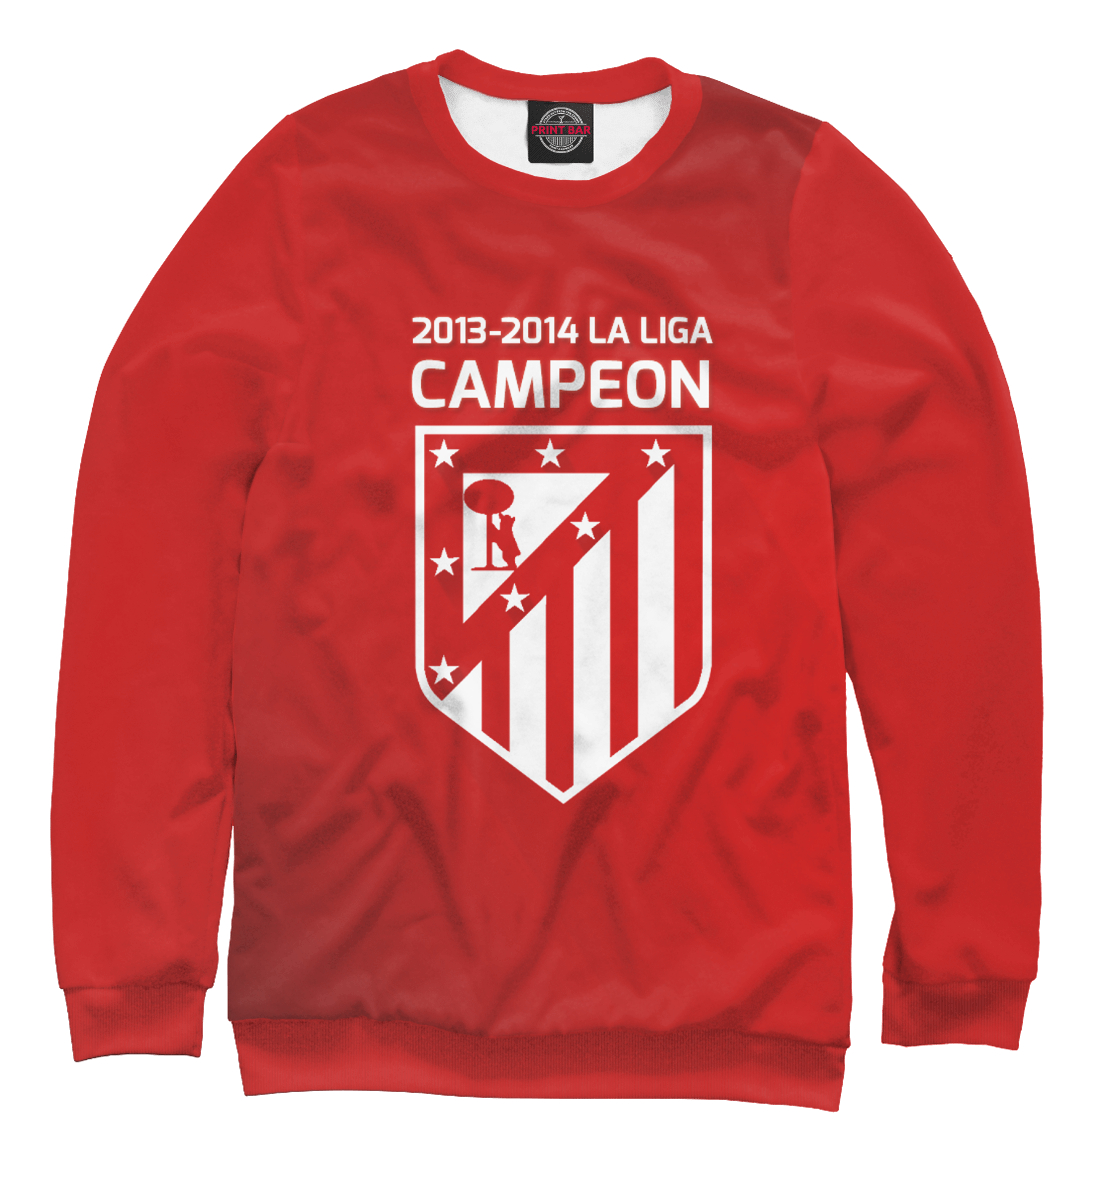 Купить Campeon La Liga 2013-2014, Printbar, Свитшоты, APD-448643-swi-1